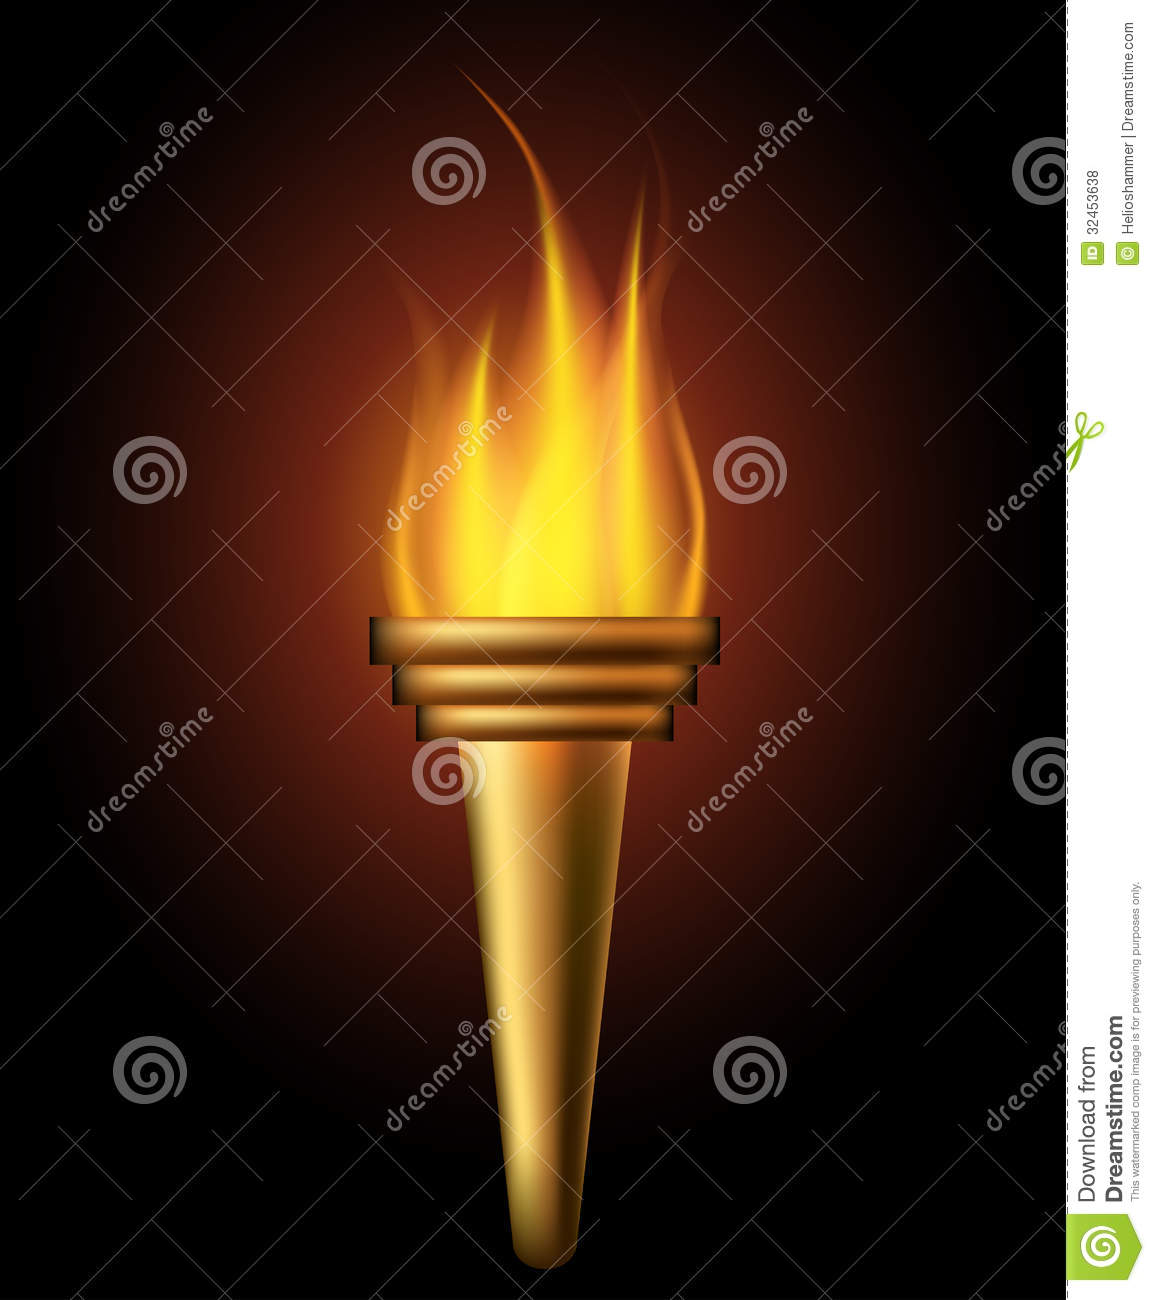 Burning Torch Royalty Free Stock Photos